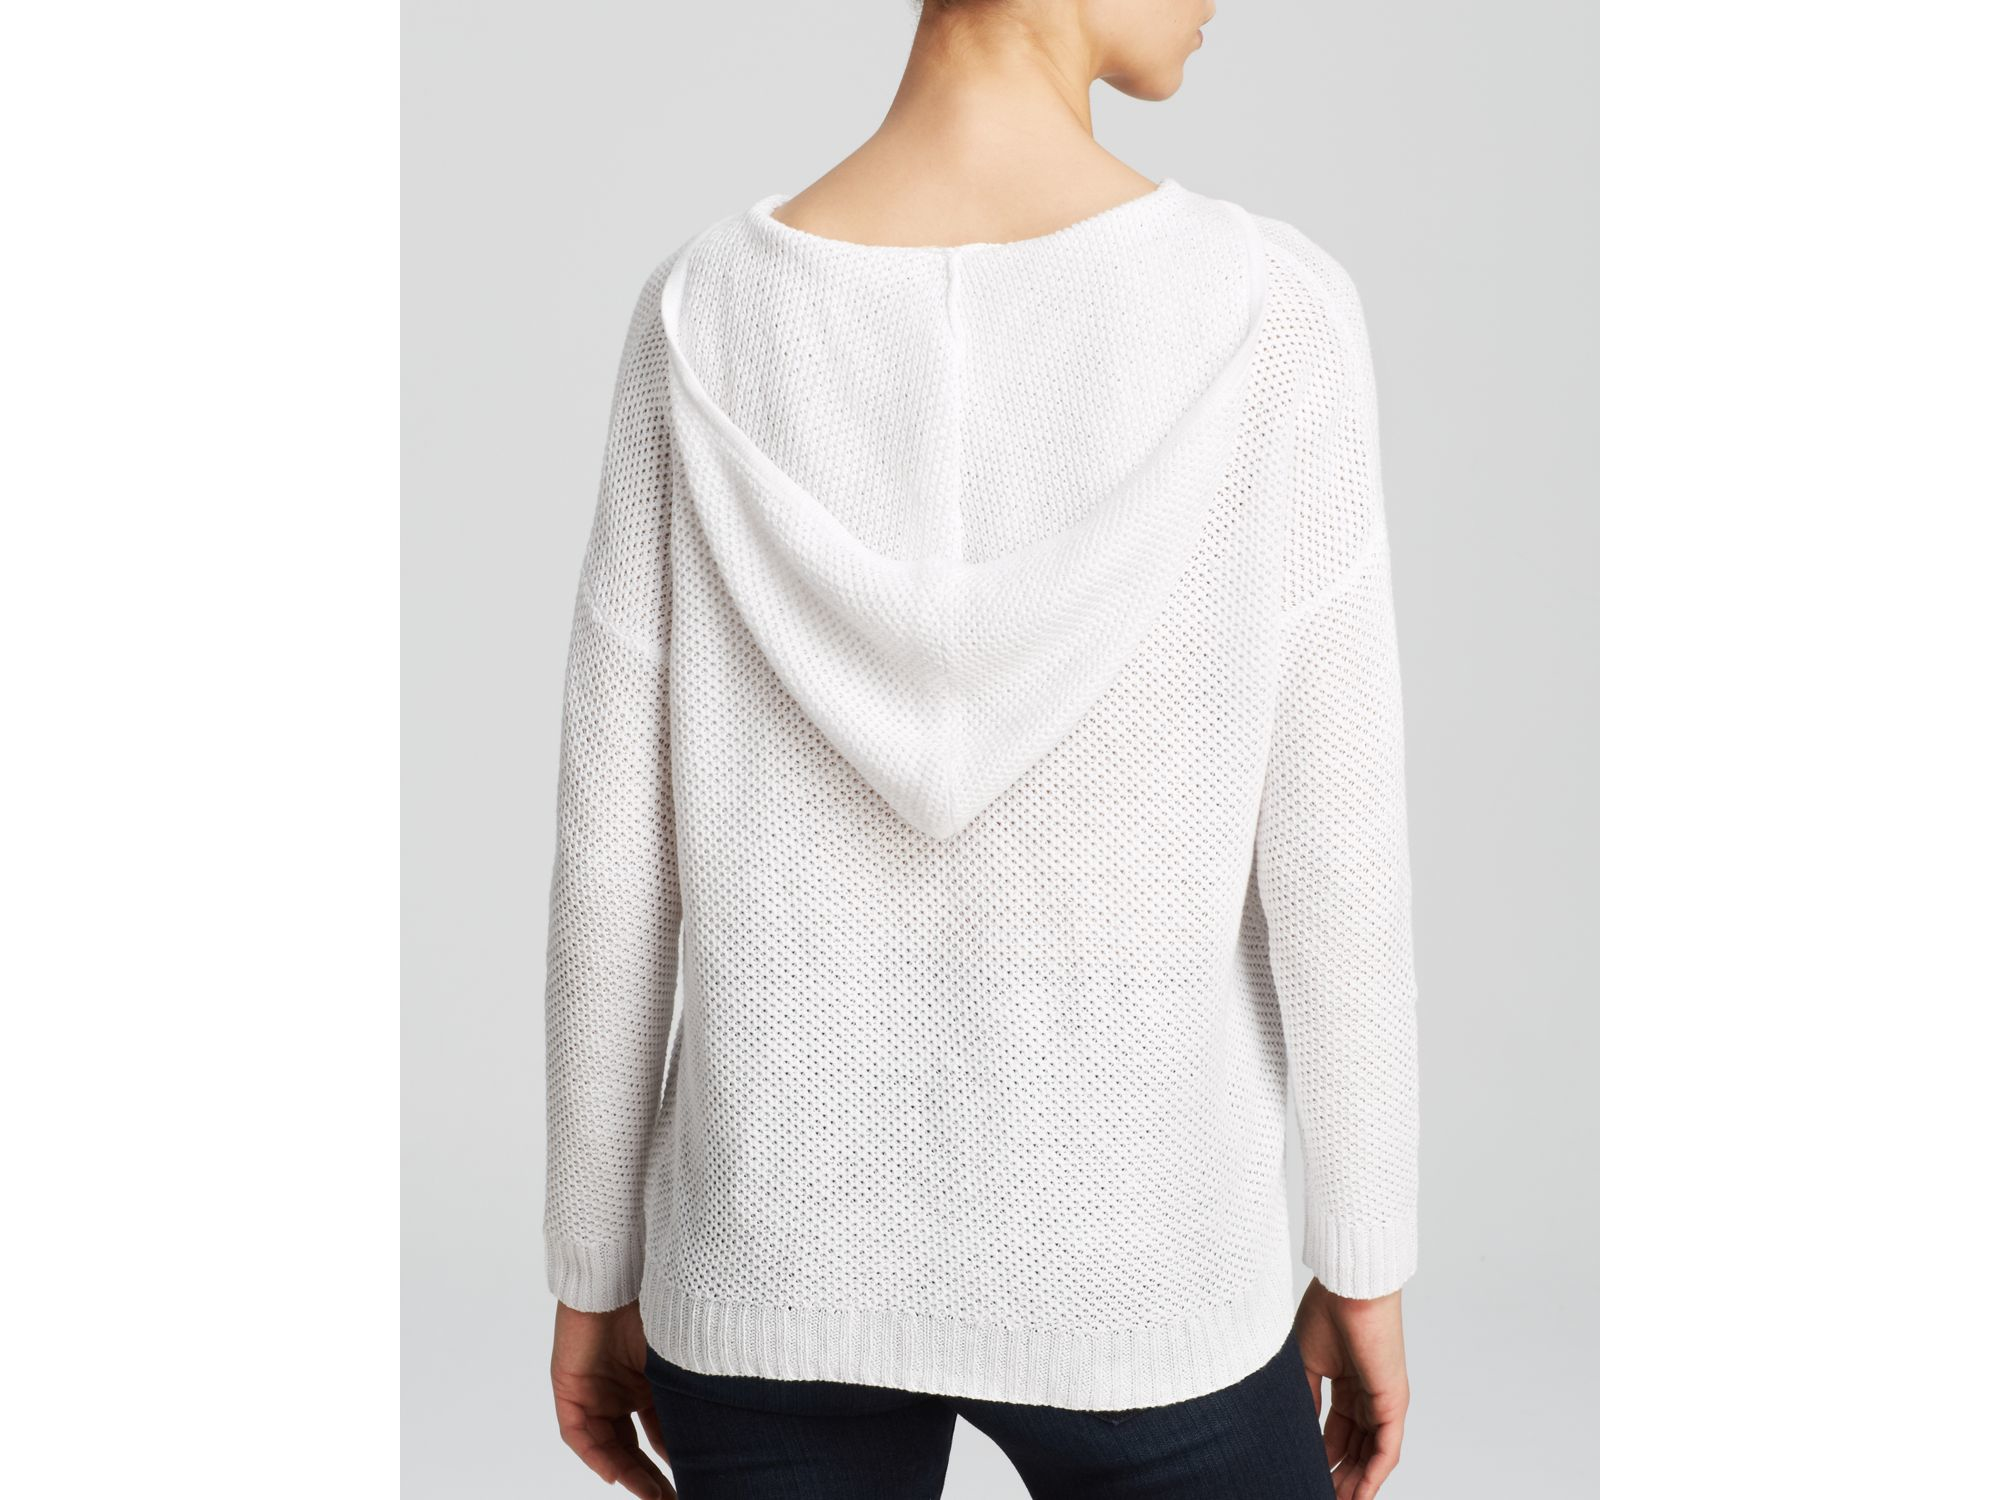 Eileen fisher Hooded Linen Sweater in White | Lyst